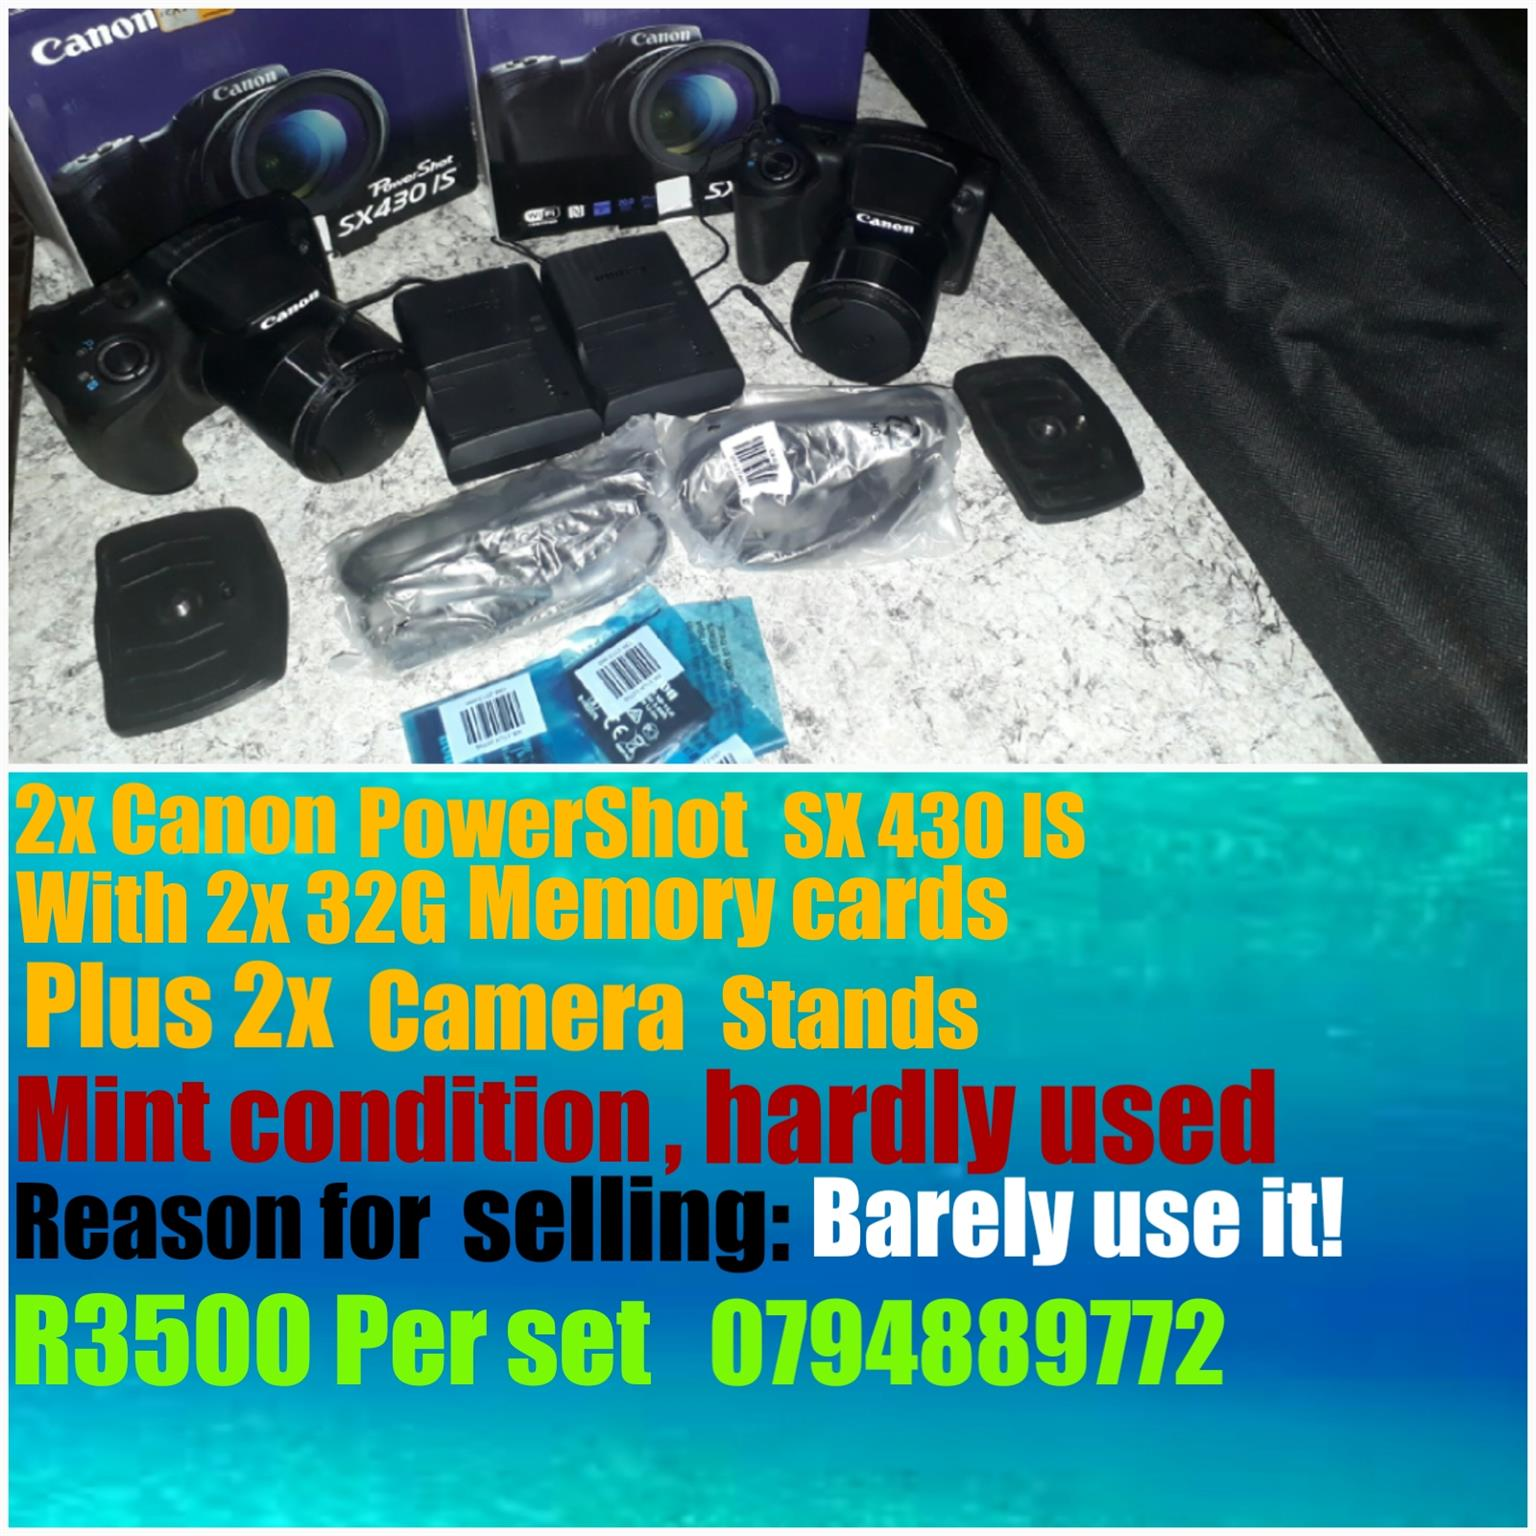 2x Brand new Canon  SX 430 IS, 32G memory card, and Camera stands for sale